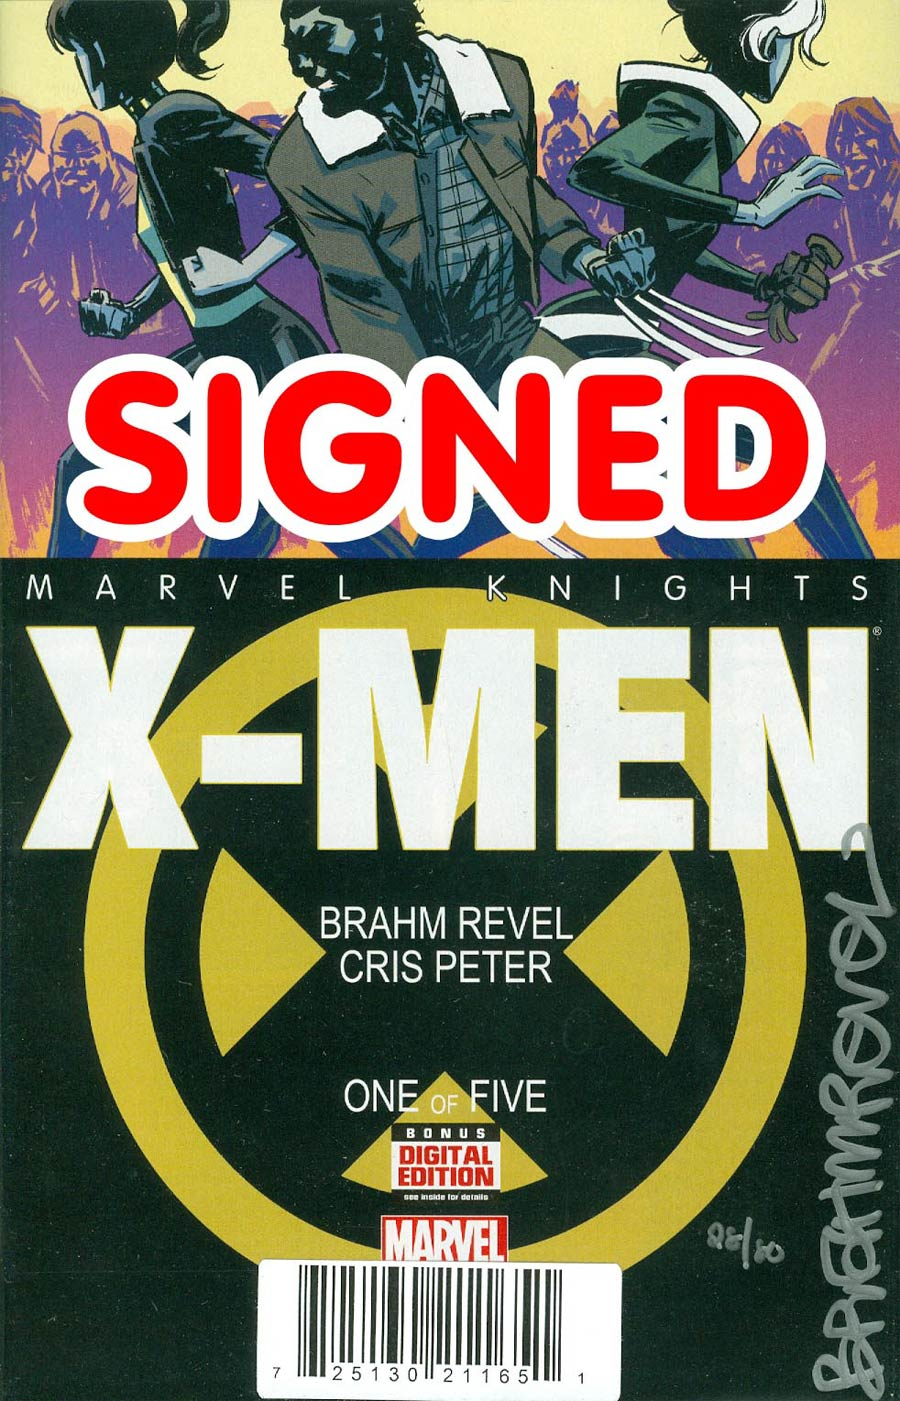 Marvel Knights X-Men #1 Cover C DF Signed By Brahm Revel